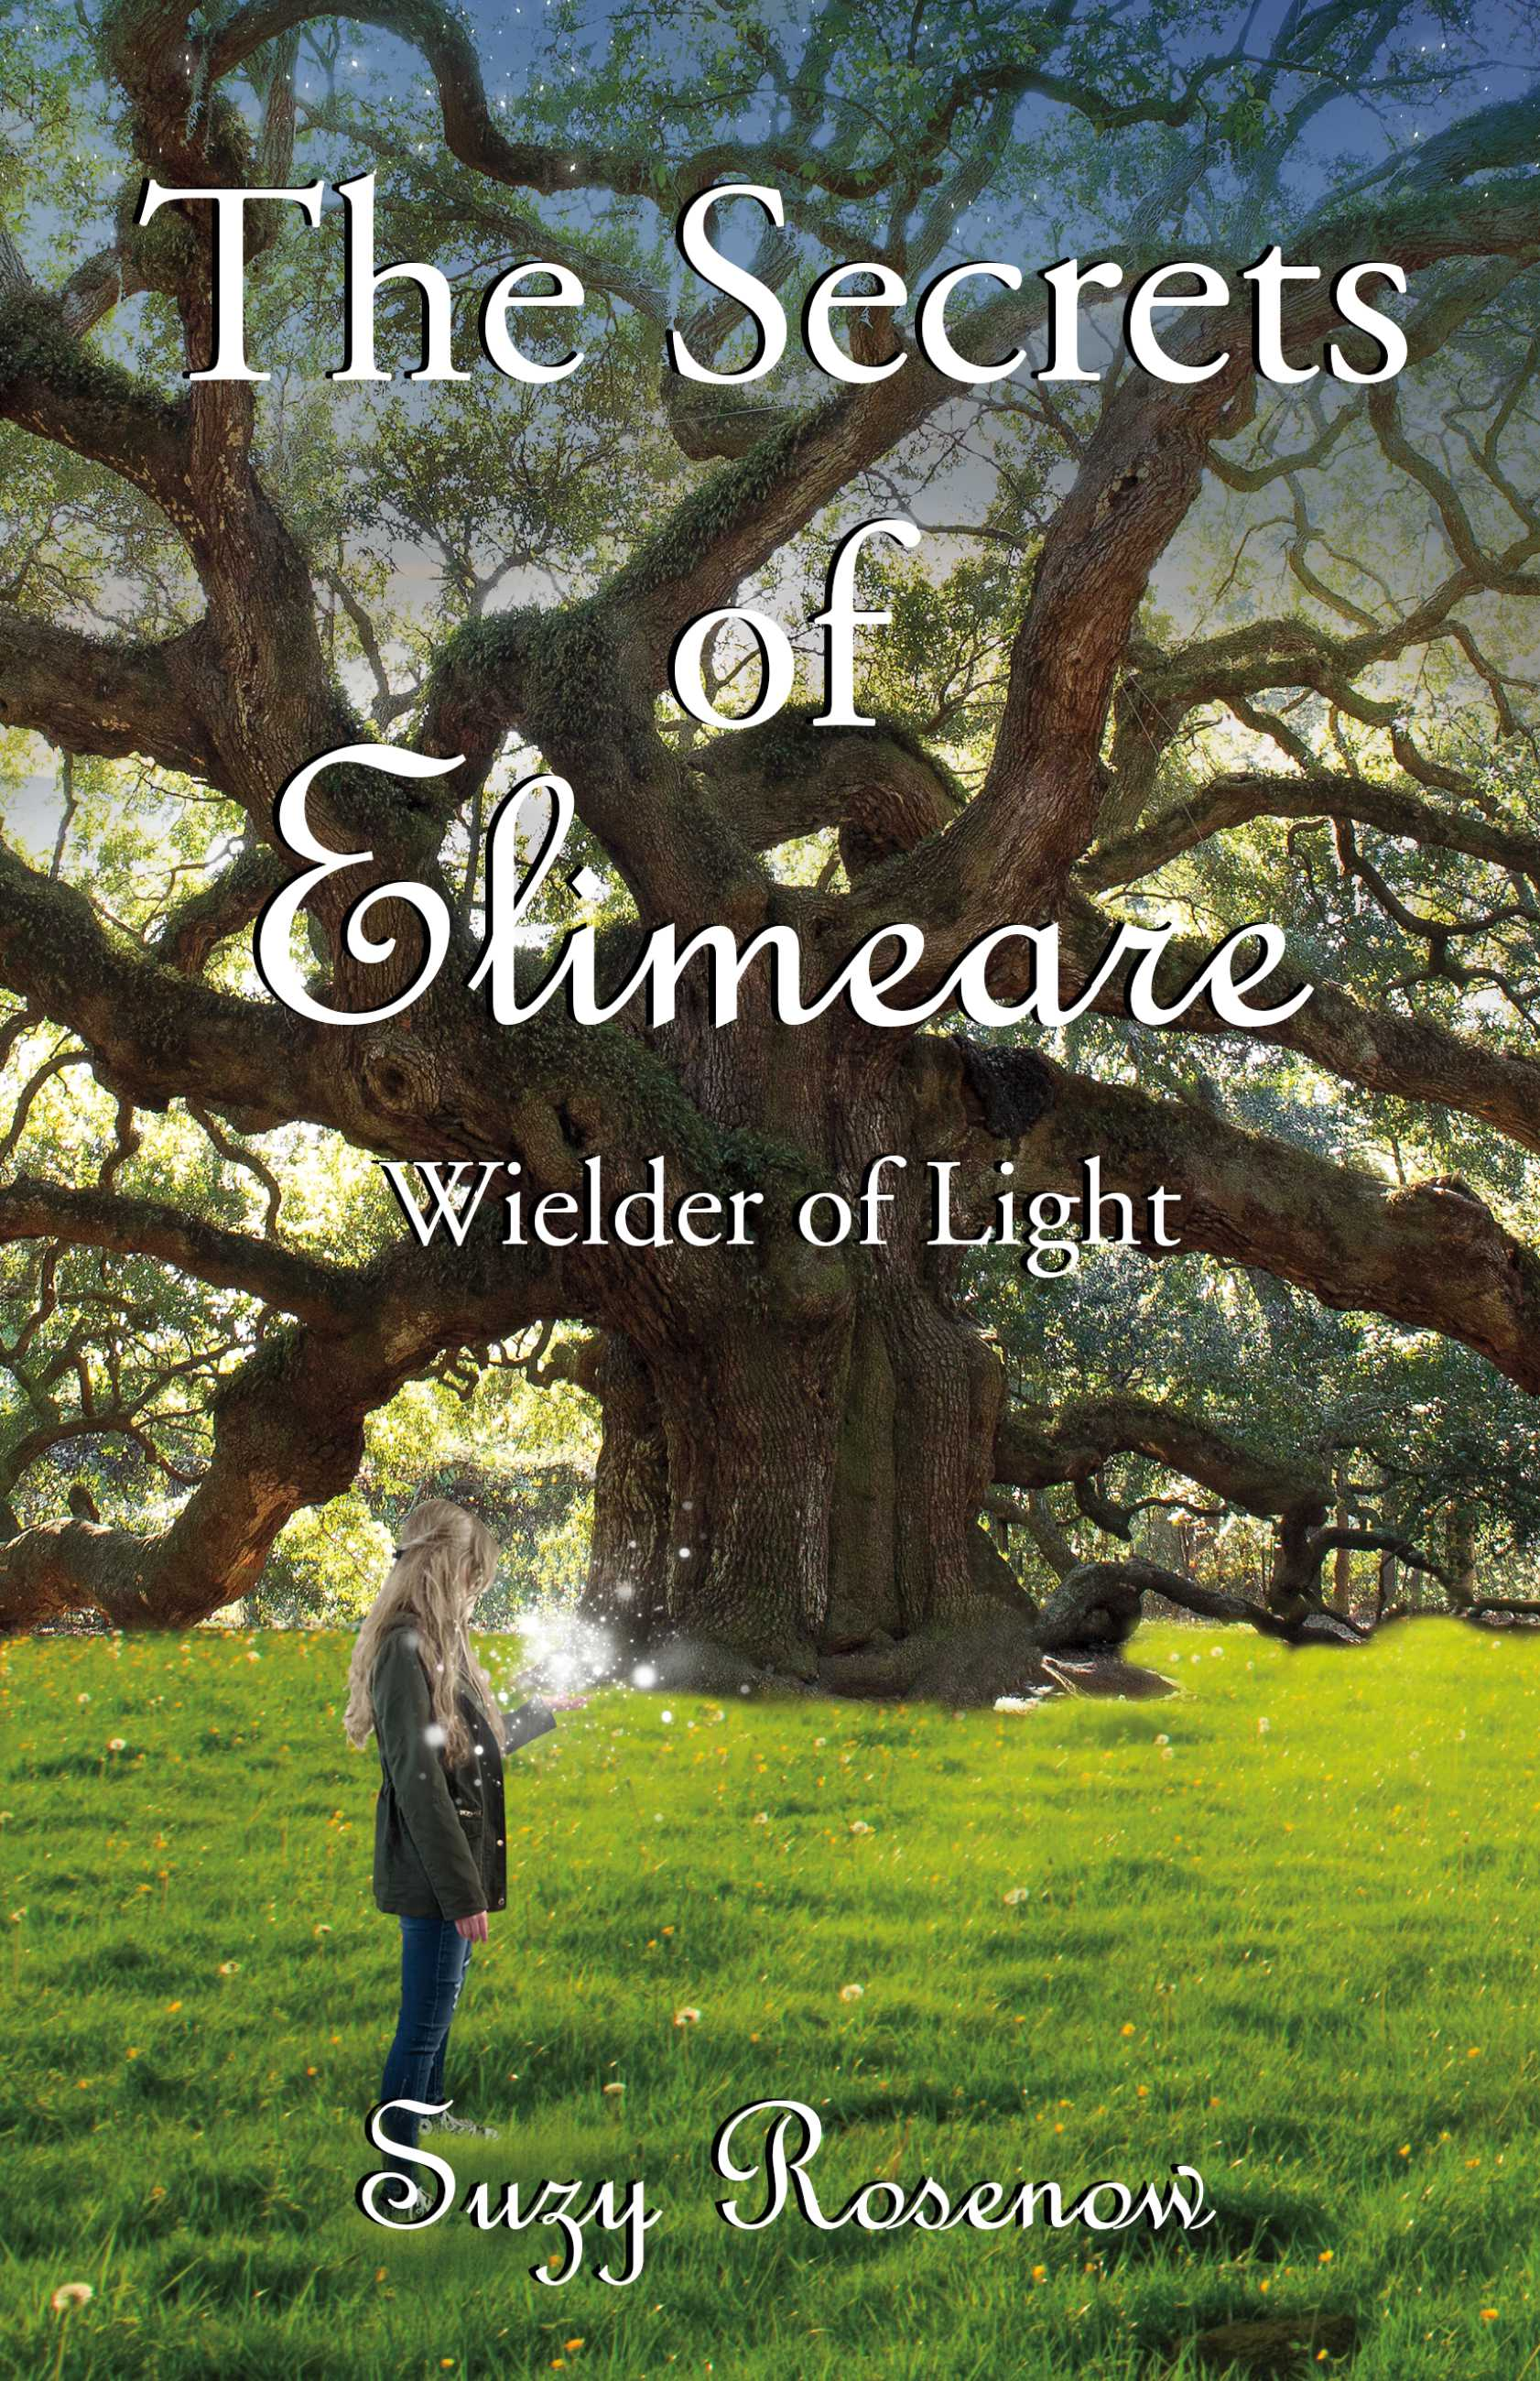 The Secrets of Elimeare Book Cover